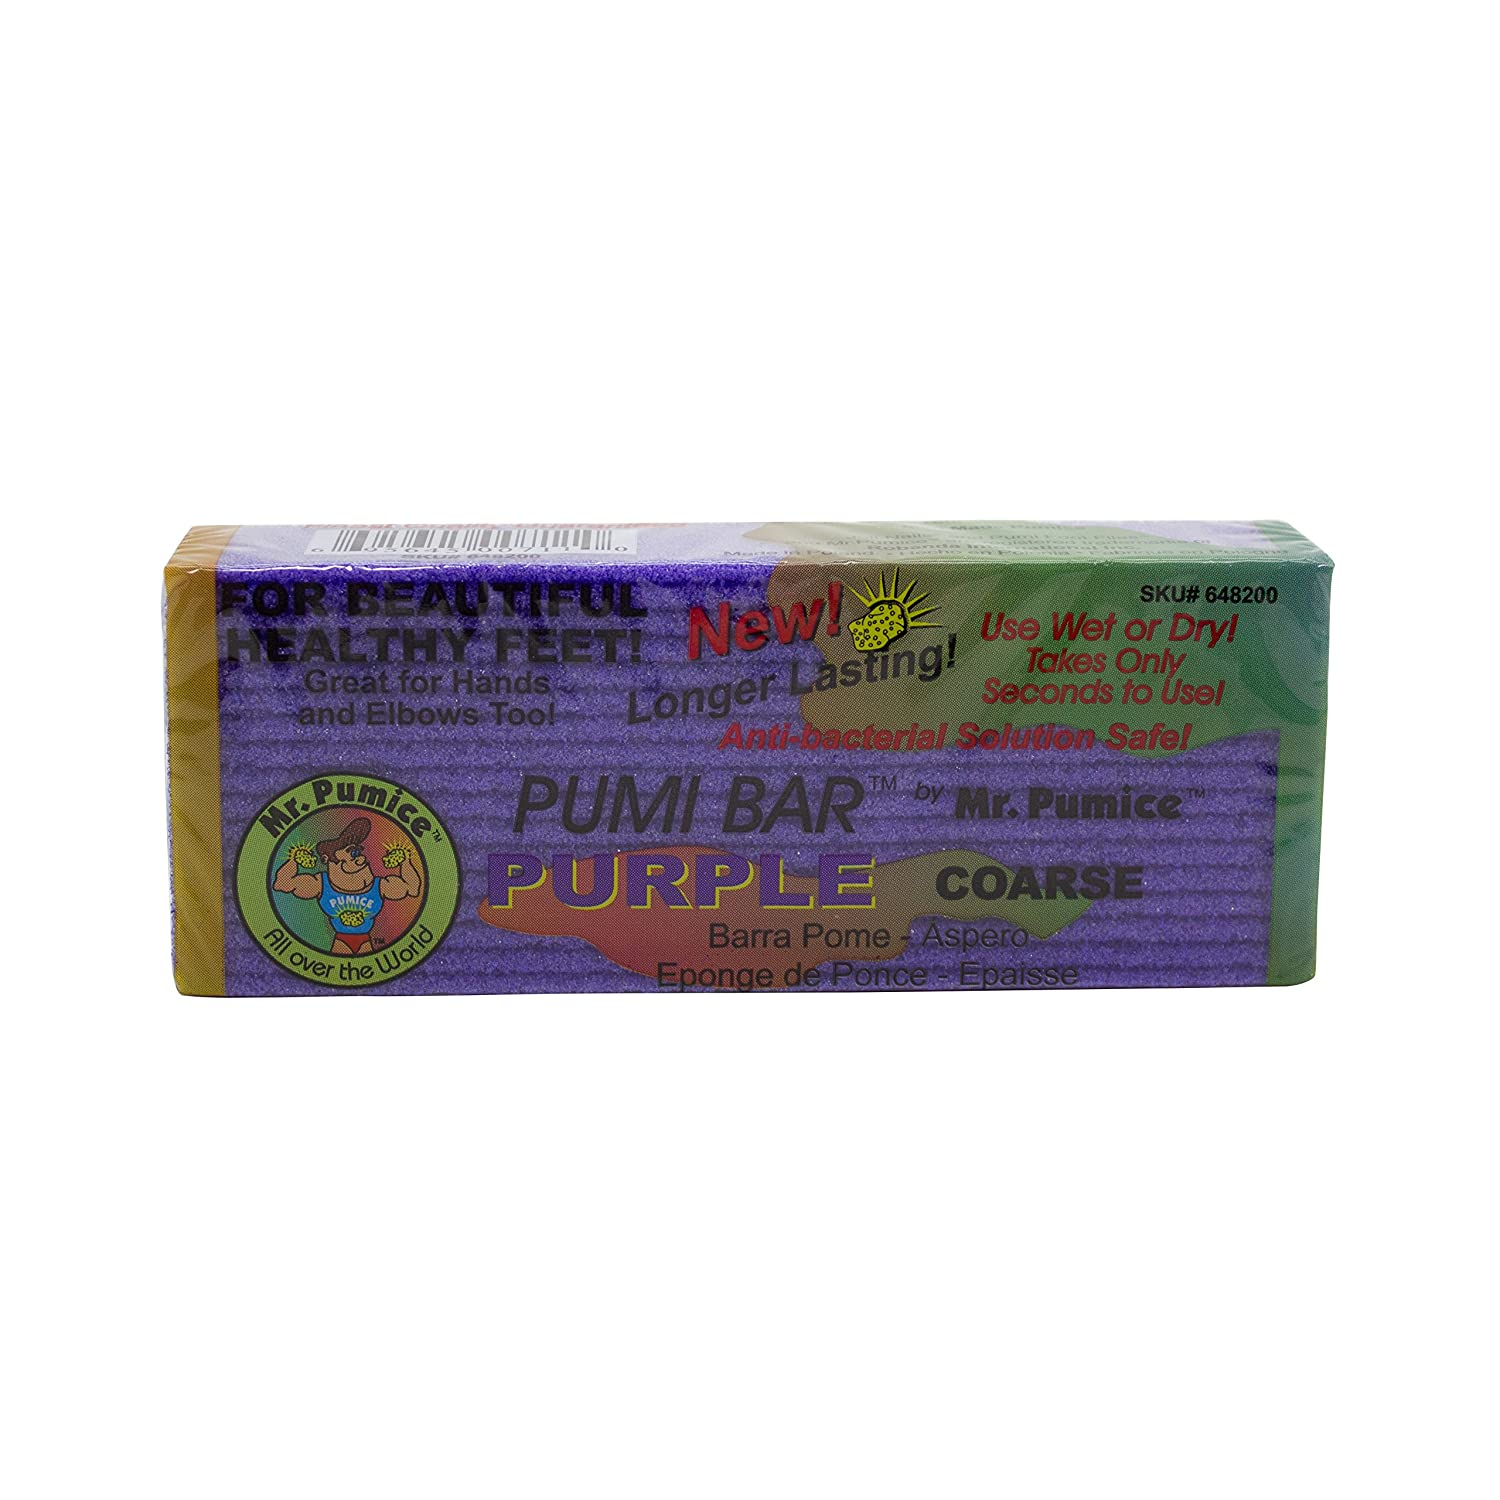 Mr. Pumice Purple Pumi Bar (Single): Extra-Coarse Callus Remover, Pedicure Stone & Ped File Scrubber For Smooth Feet and Heels: Beauty